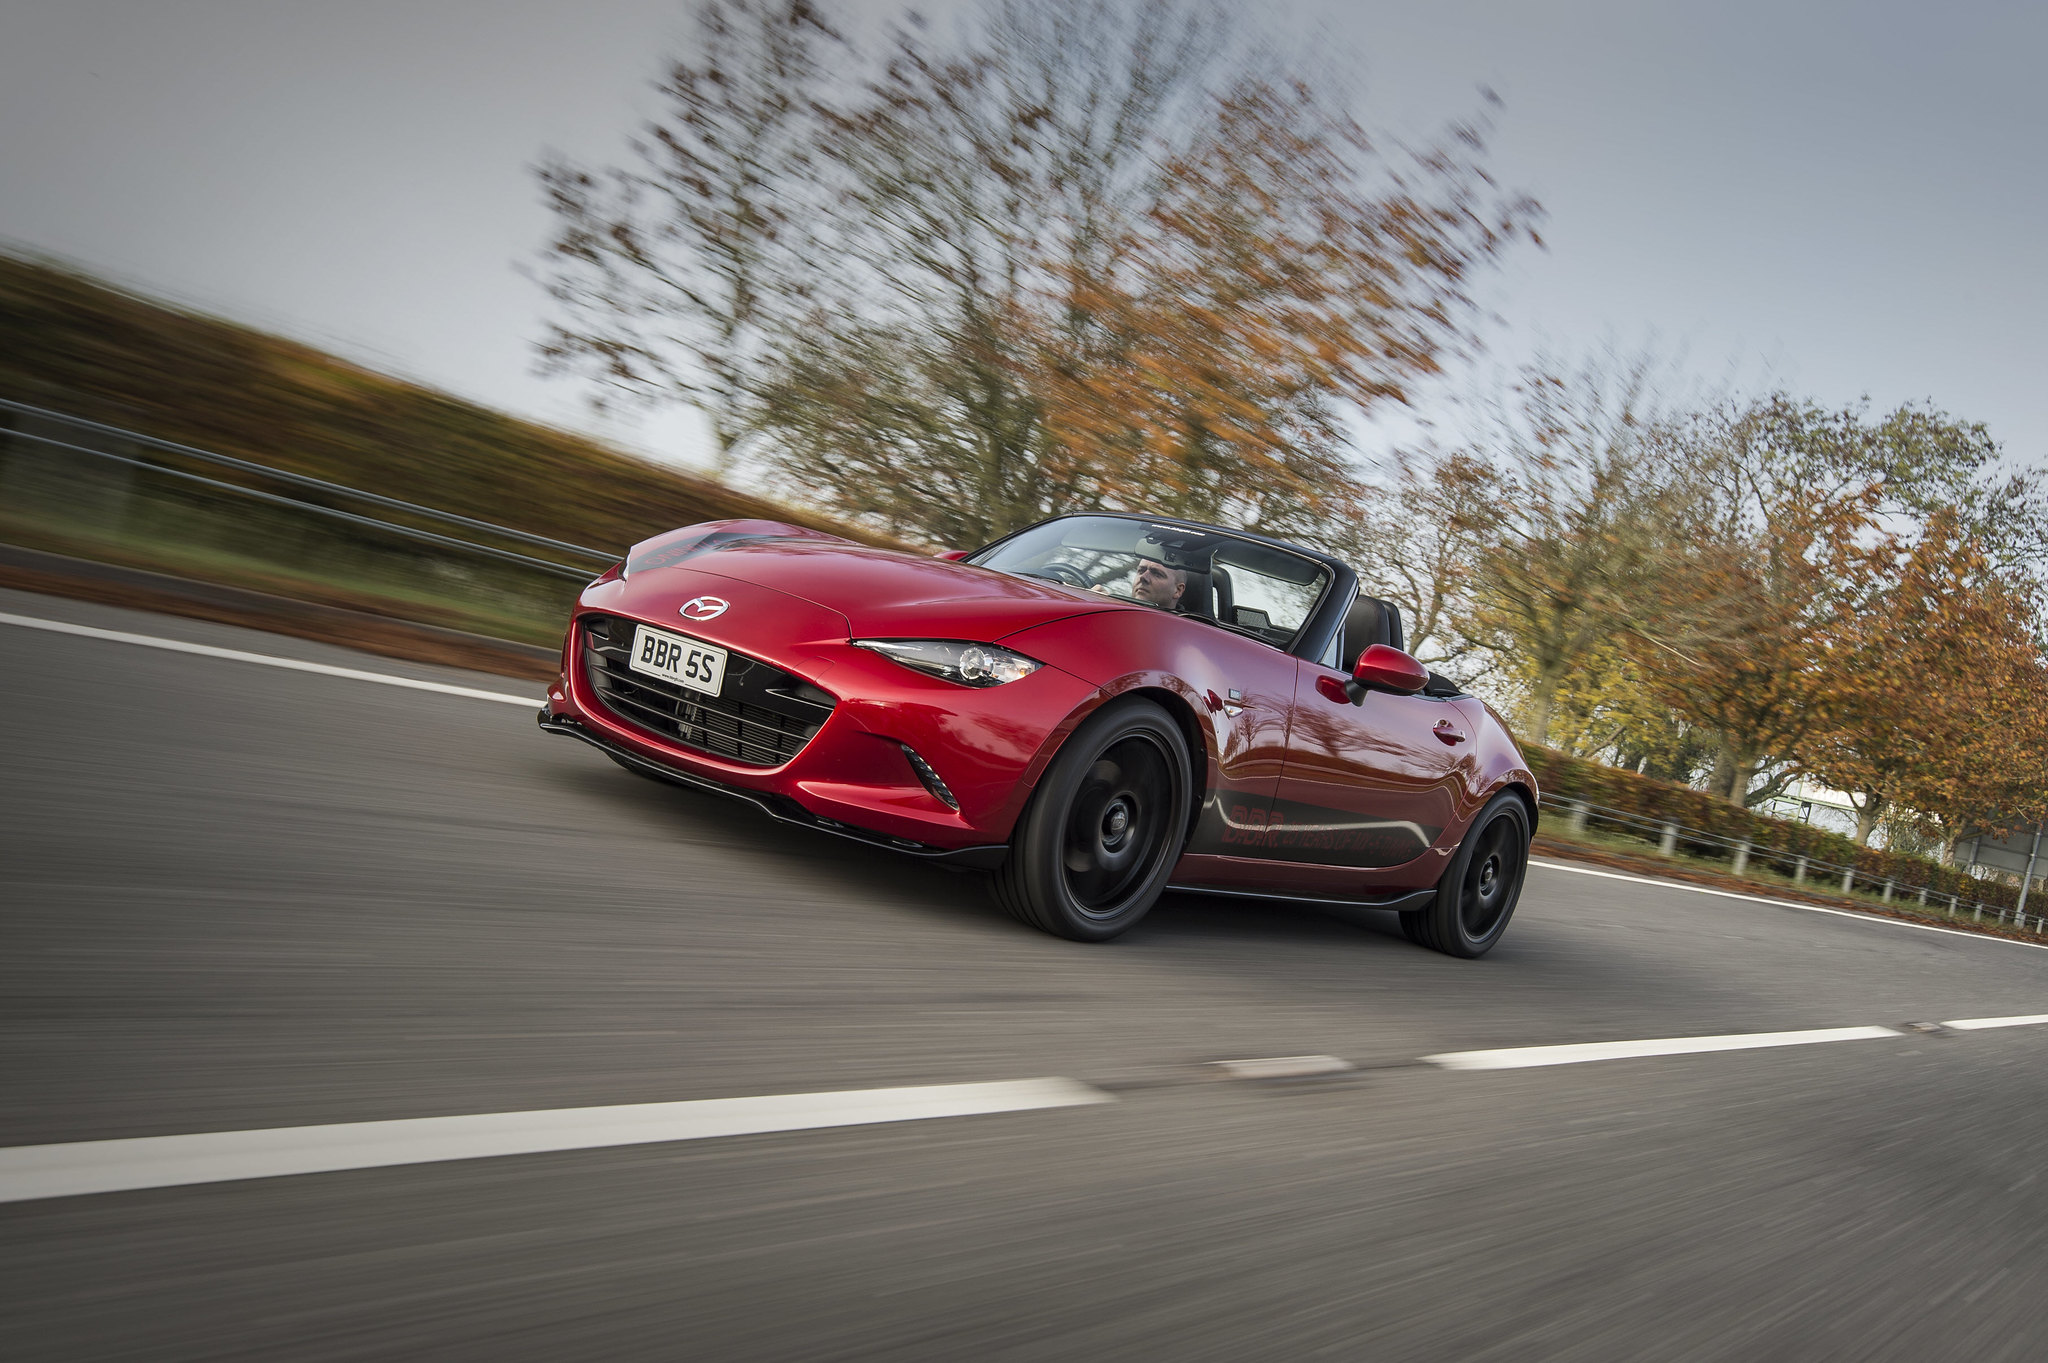 BBR unveils engine and chassis tuning program for MX-5 sports car